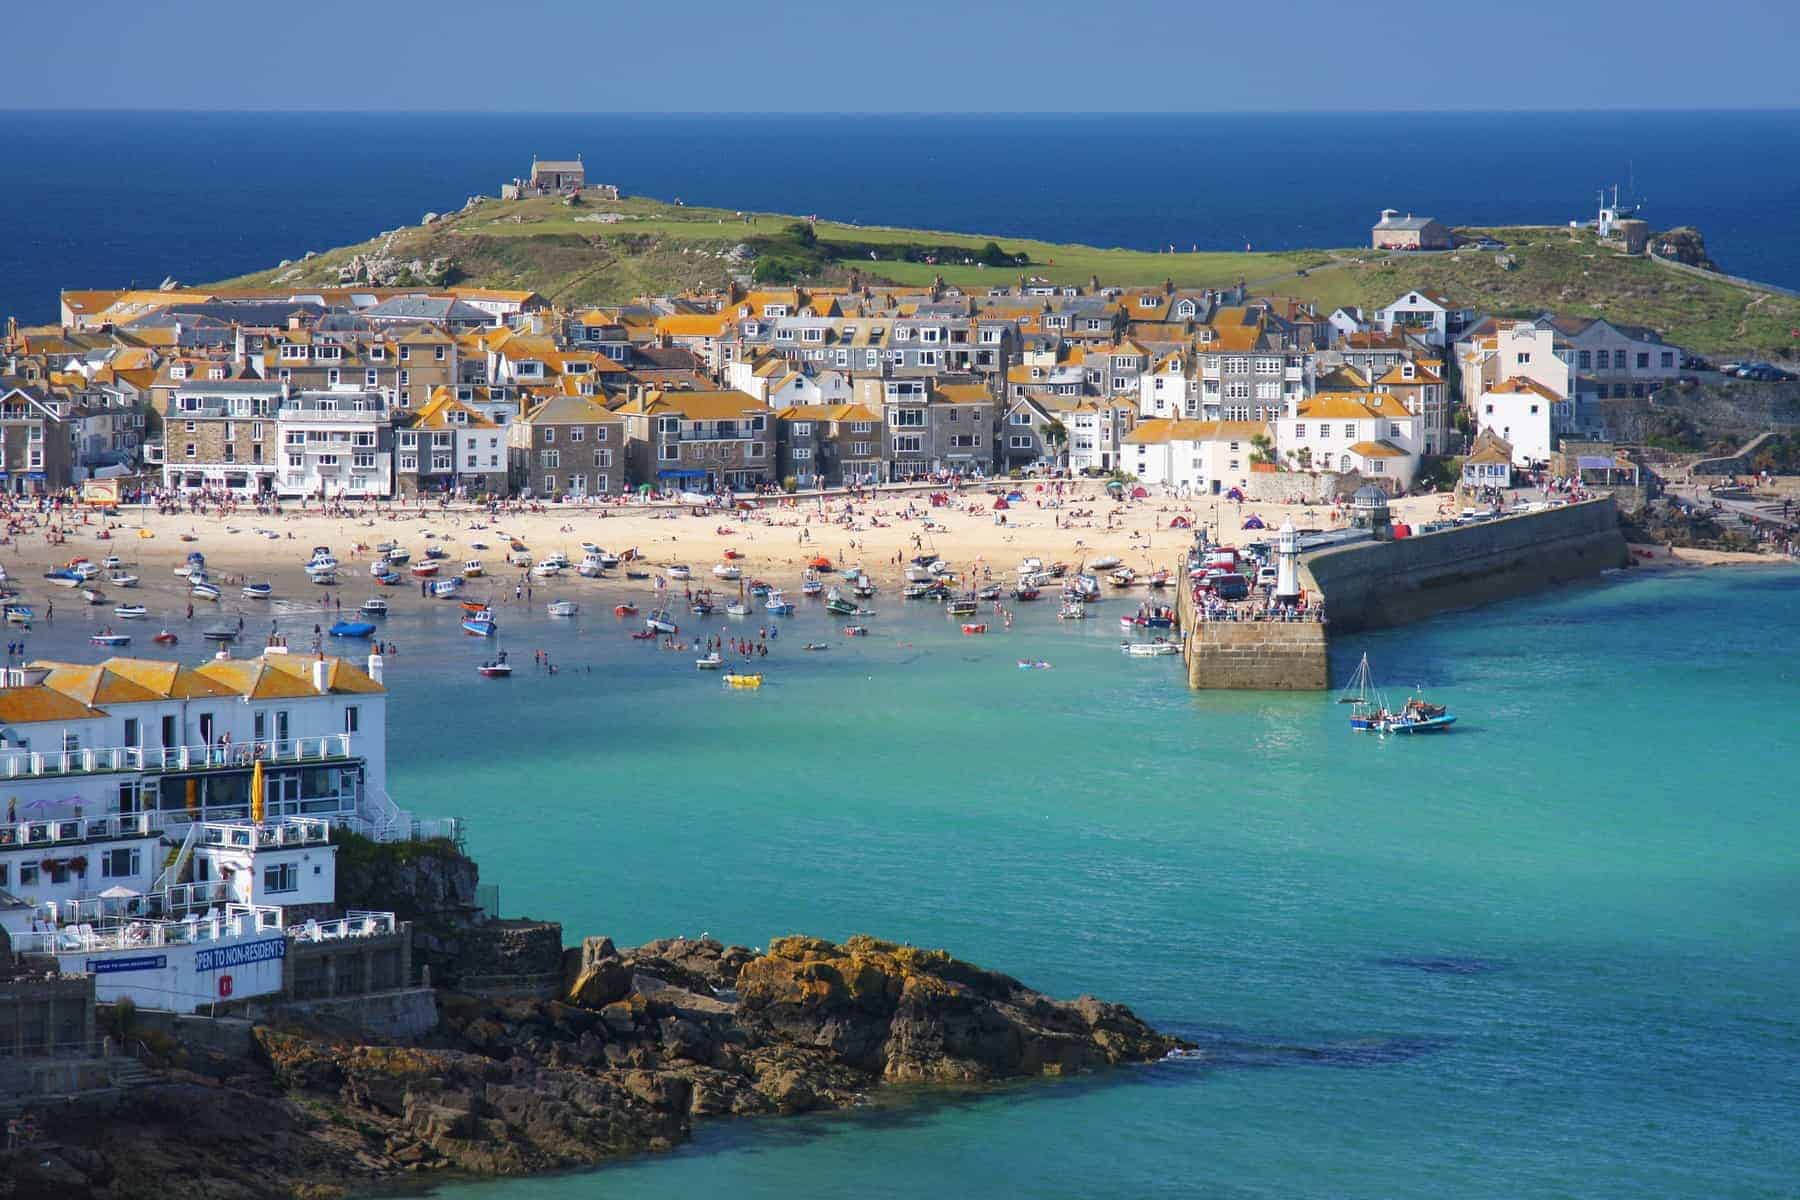 The seaside village of St Ives in Cornwall